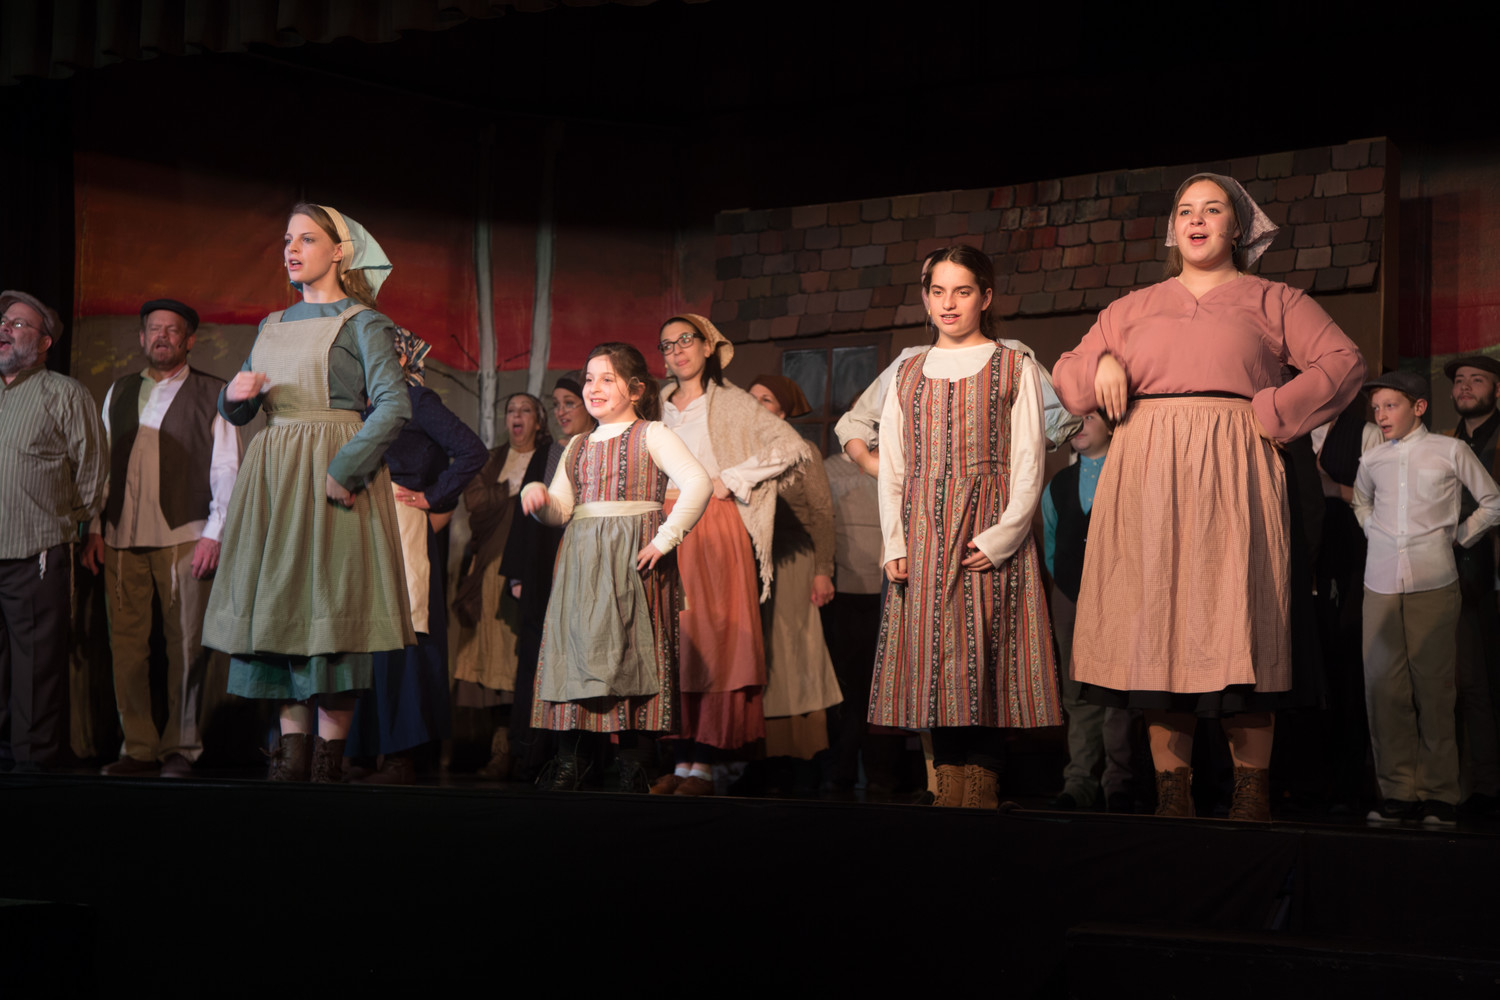 Fiddler on the roof celebrates themes of family, unity and endings and beginnings.